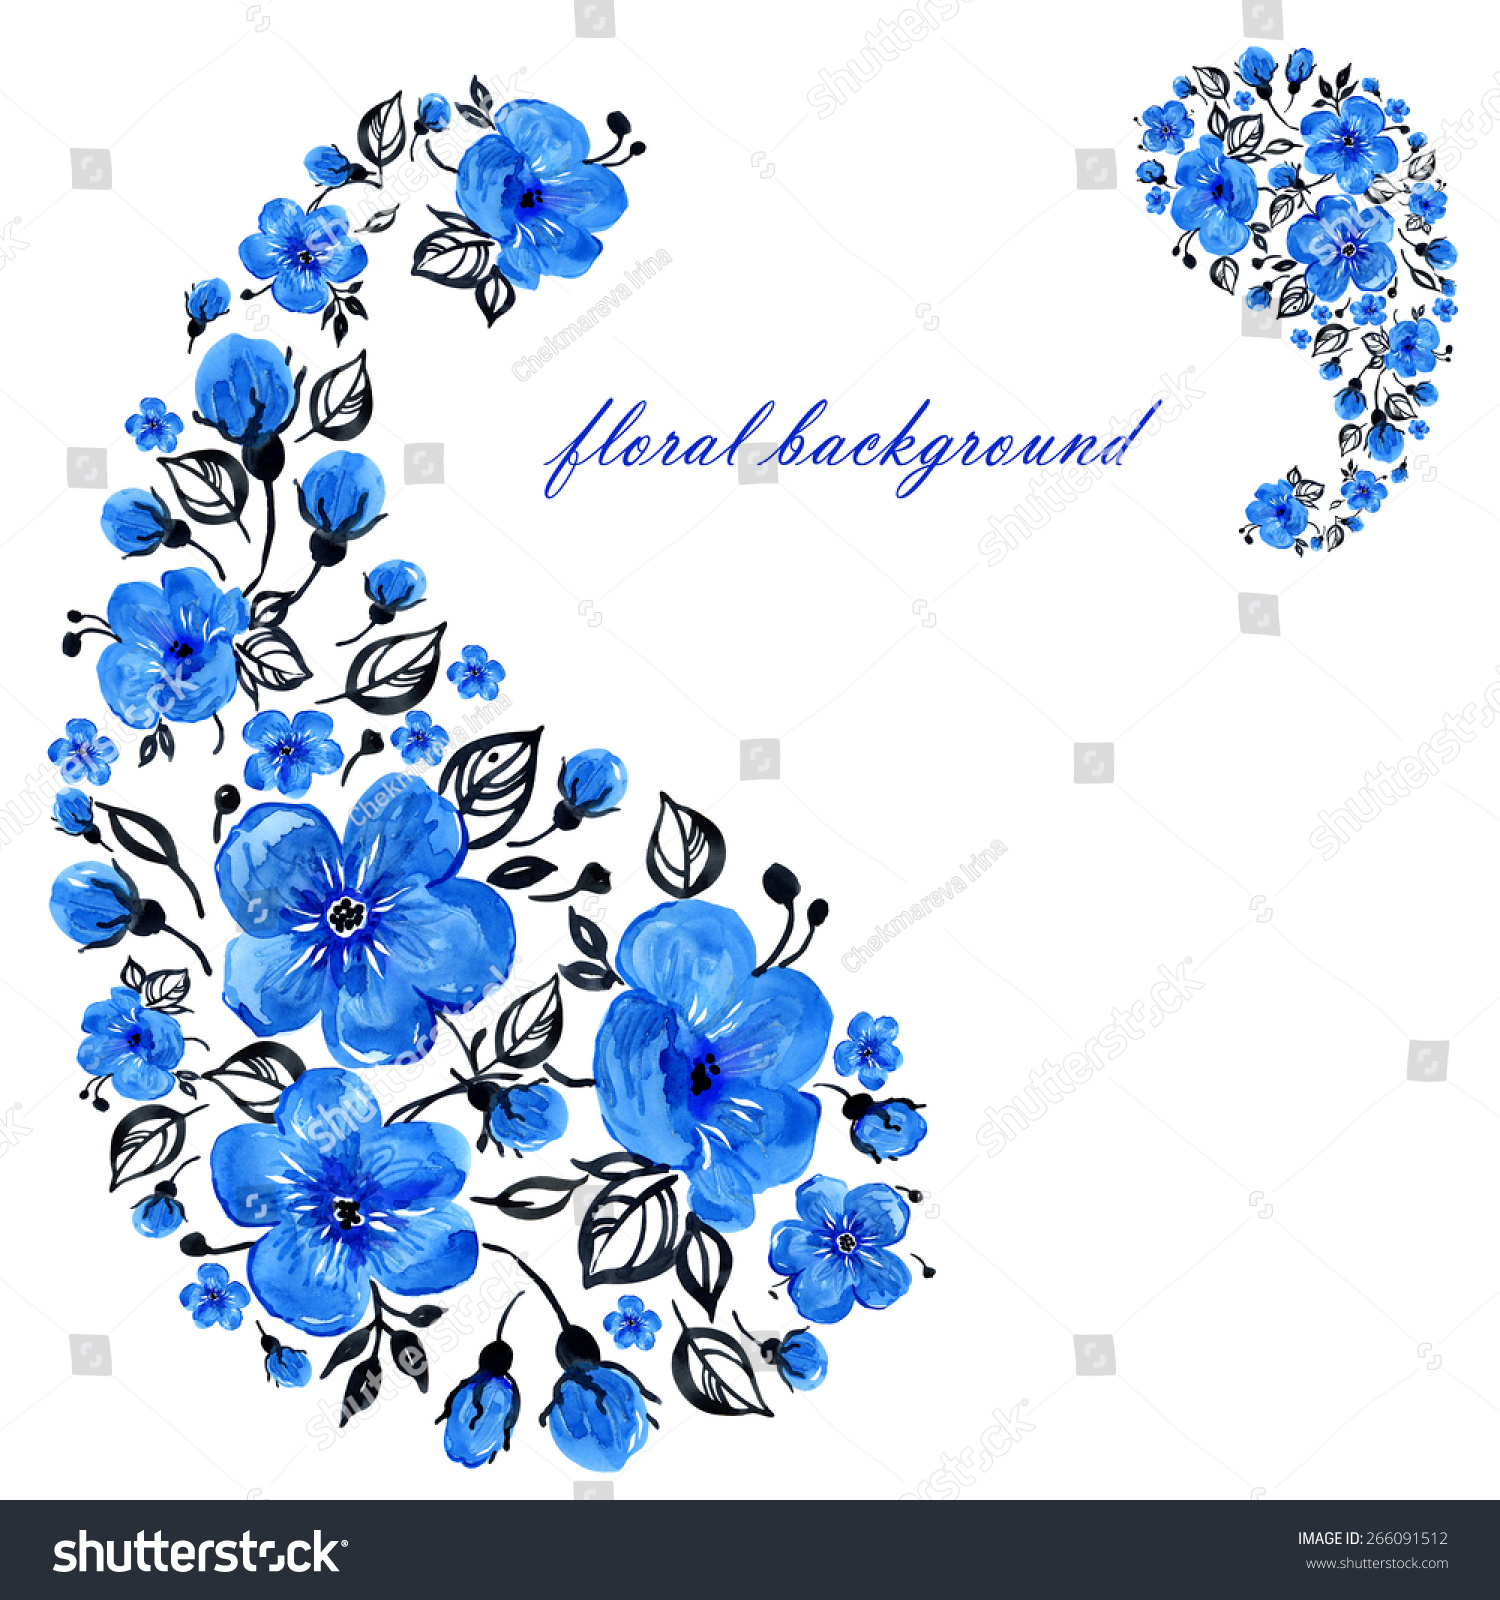 Watercolor Floral Background Beautiful Blue Flowers Stock